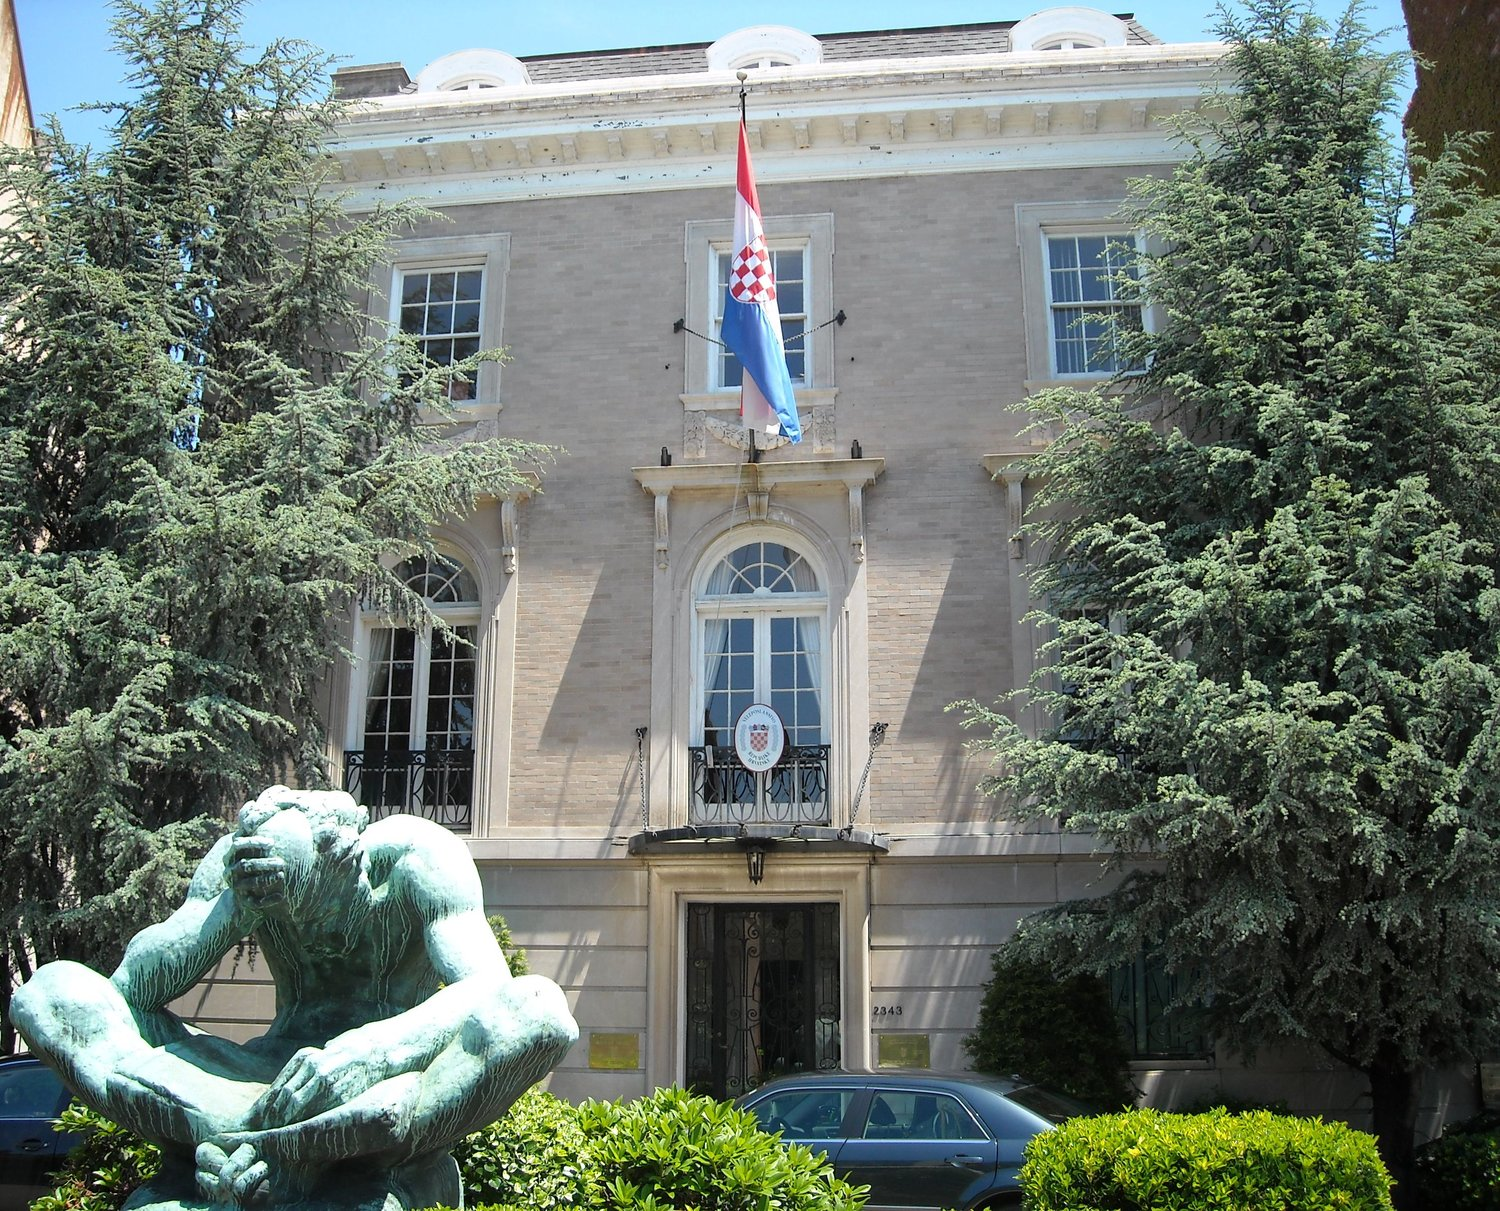 The former location of the Austrian Embassy on 2343 Massachusetts Avenue, NW. Today the building houses the Embassy of Croatia to the United States. Wikimedia/AgnosticPreachersKid